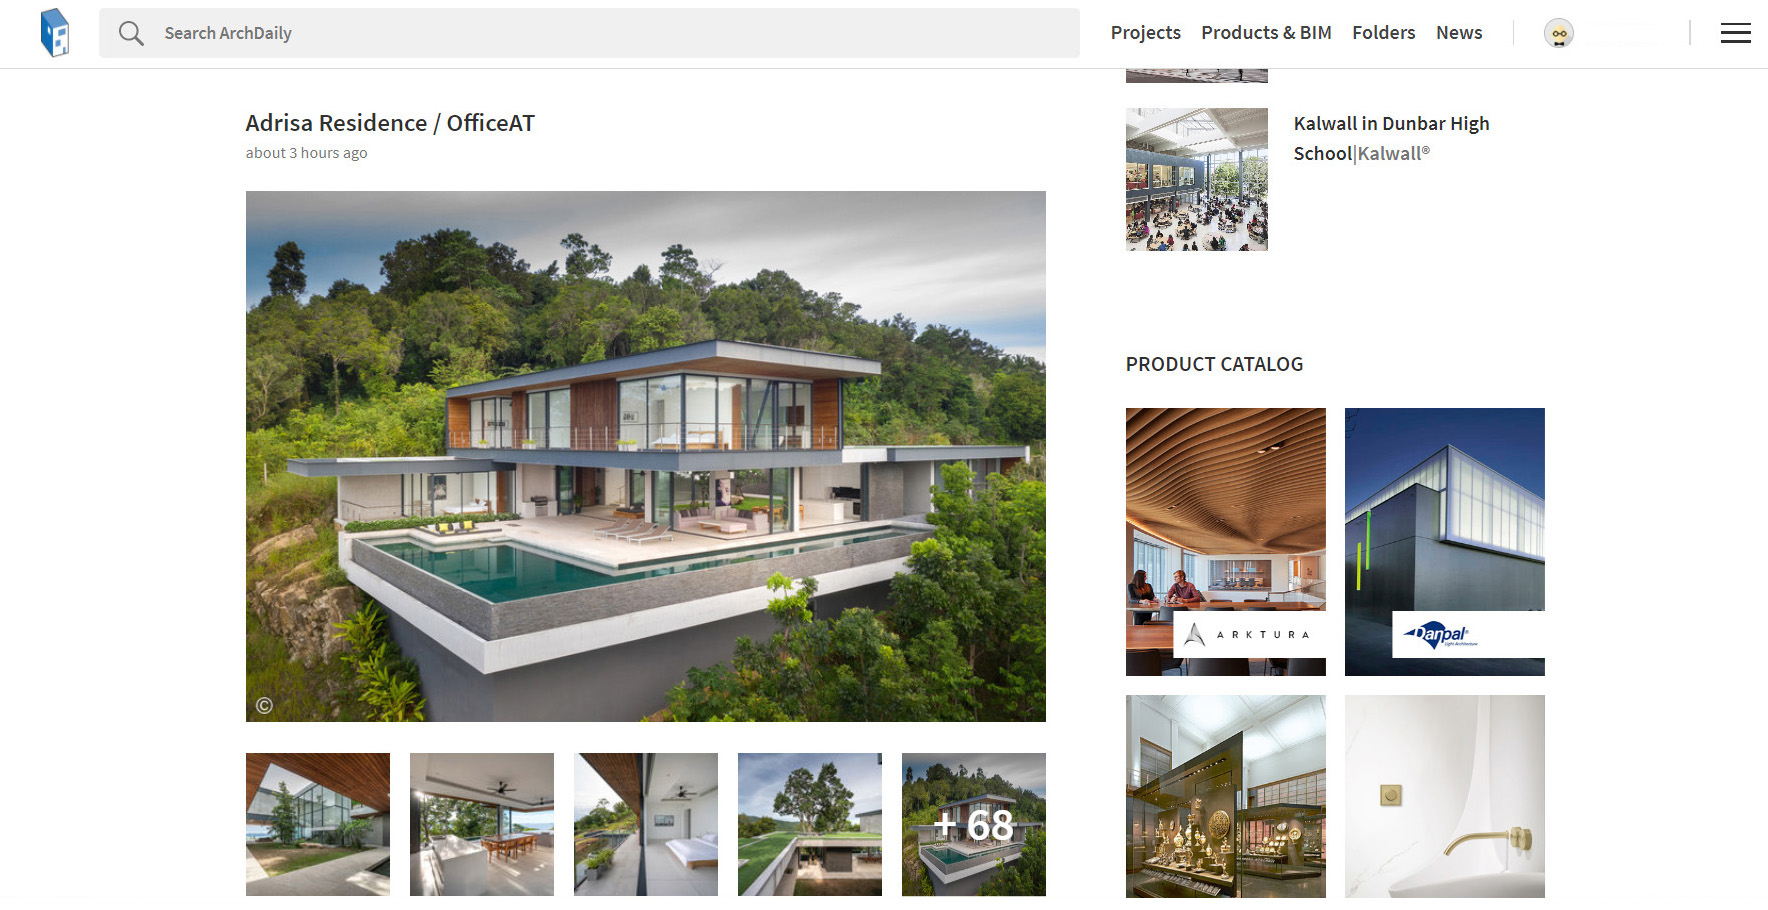 Panoramic Villa: Adrisa Residence on archdaily